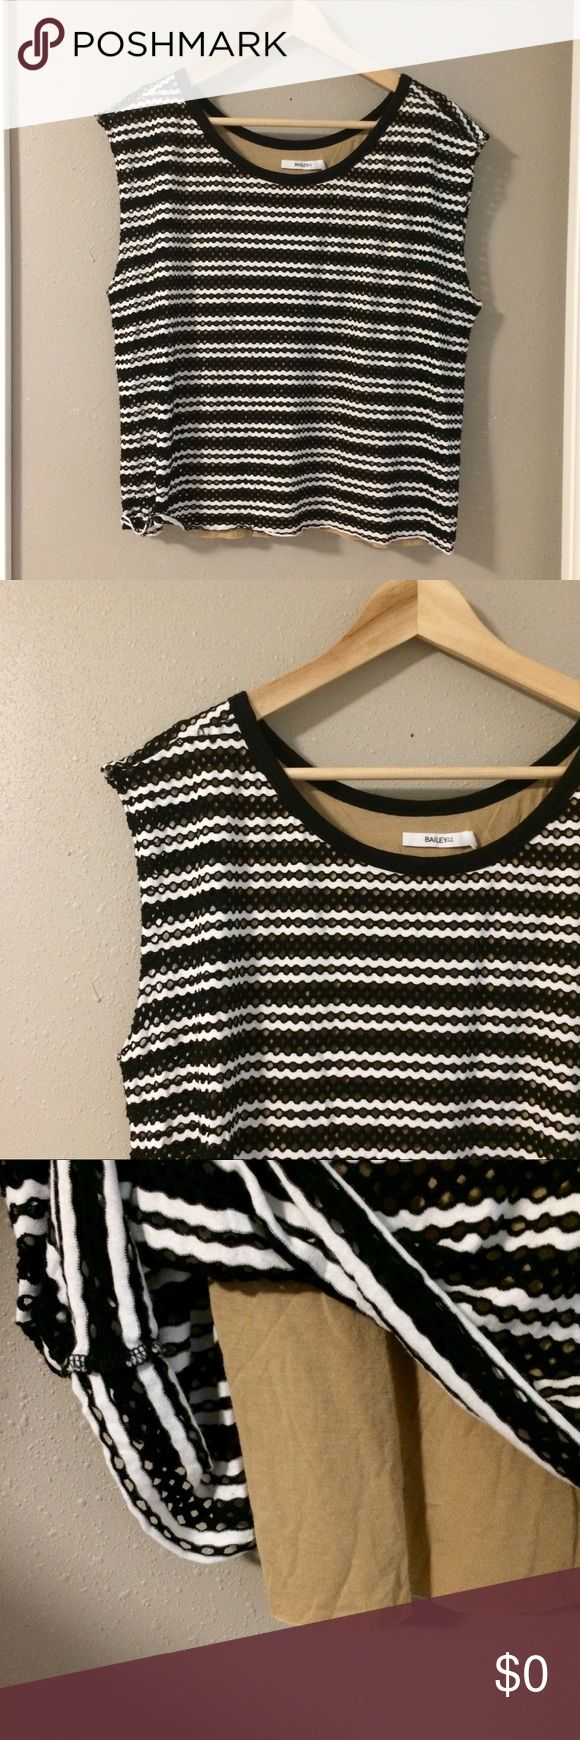 L Bailey 44 Top L Bailey 44 Top. Black and white stripes with circular cut outs and knit nude lining. Super cute!! Love with a jacket and favorite jeans for fall. Excellent pre-owned condition with the exception of a missing care label. Bundle for additional discounts and seller offers. Bailey 44 Tops